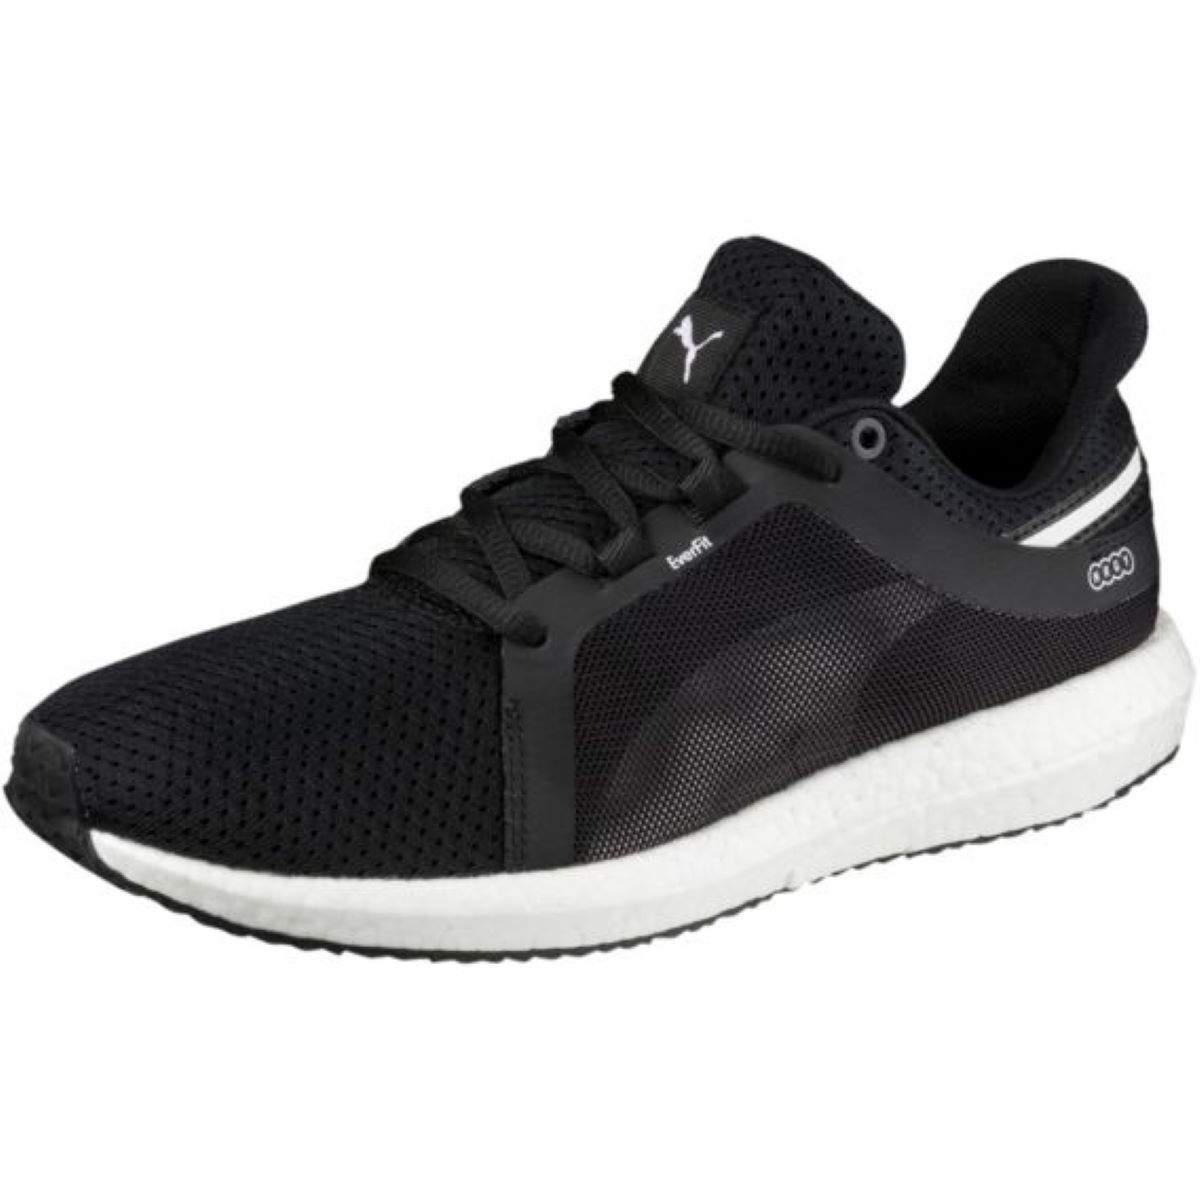 Chaussures Femme Puma Mega NRGY Turbo 2 - UK 7.5 black-white